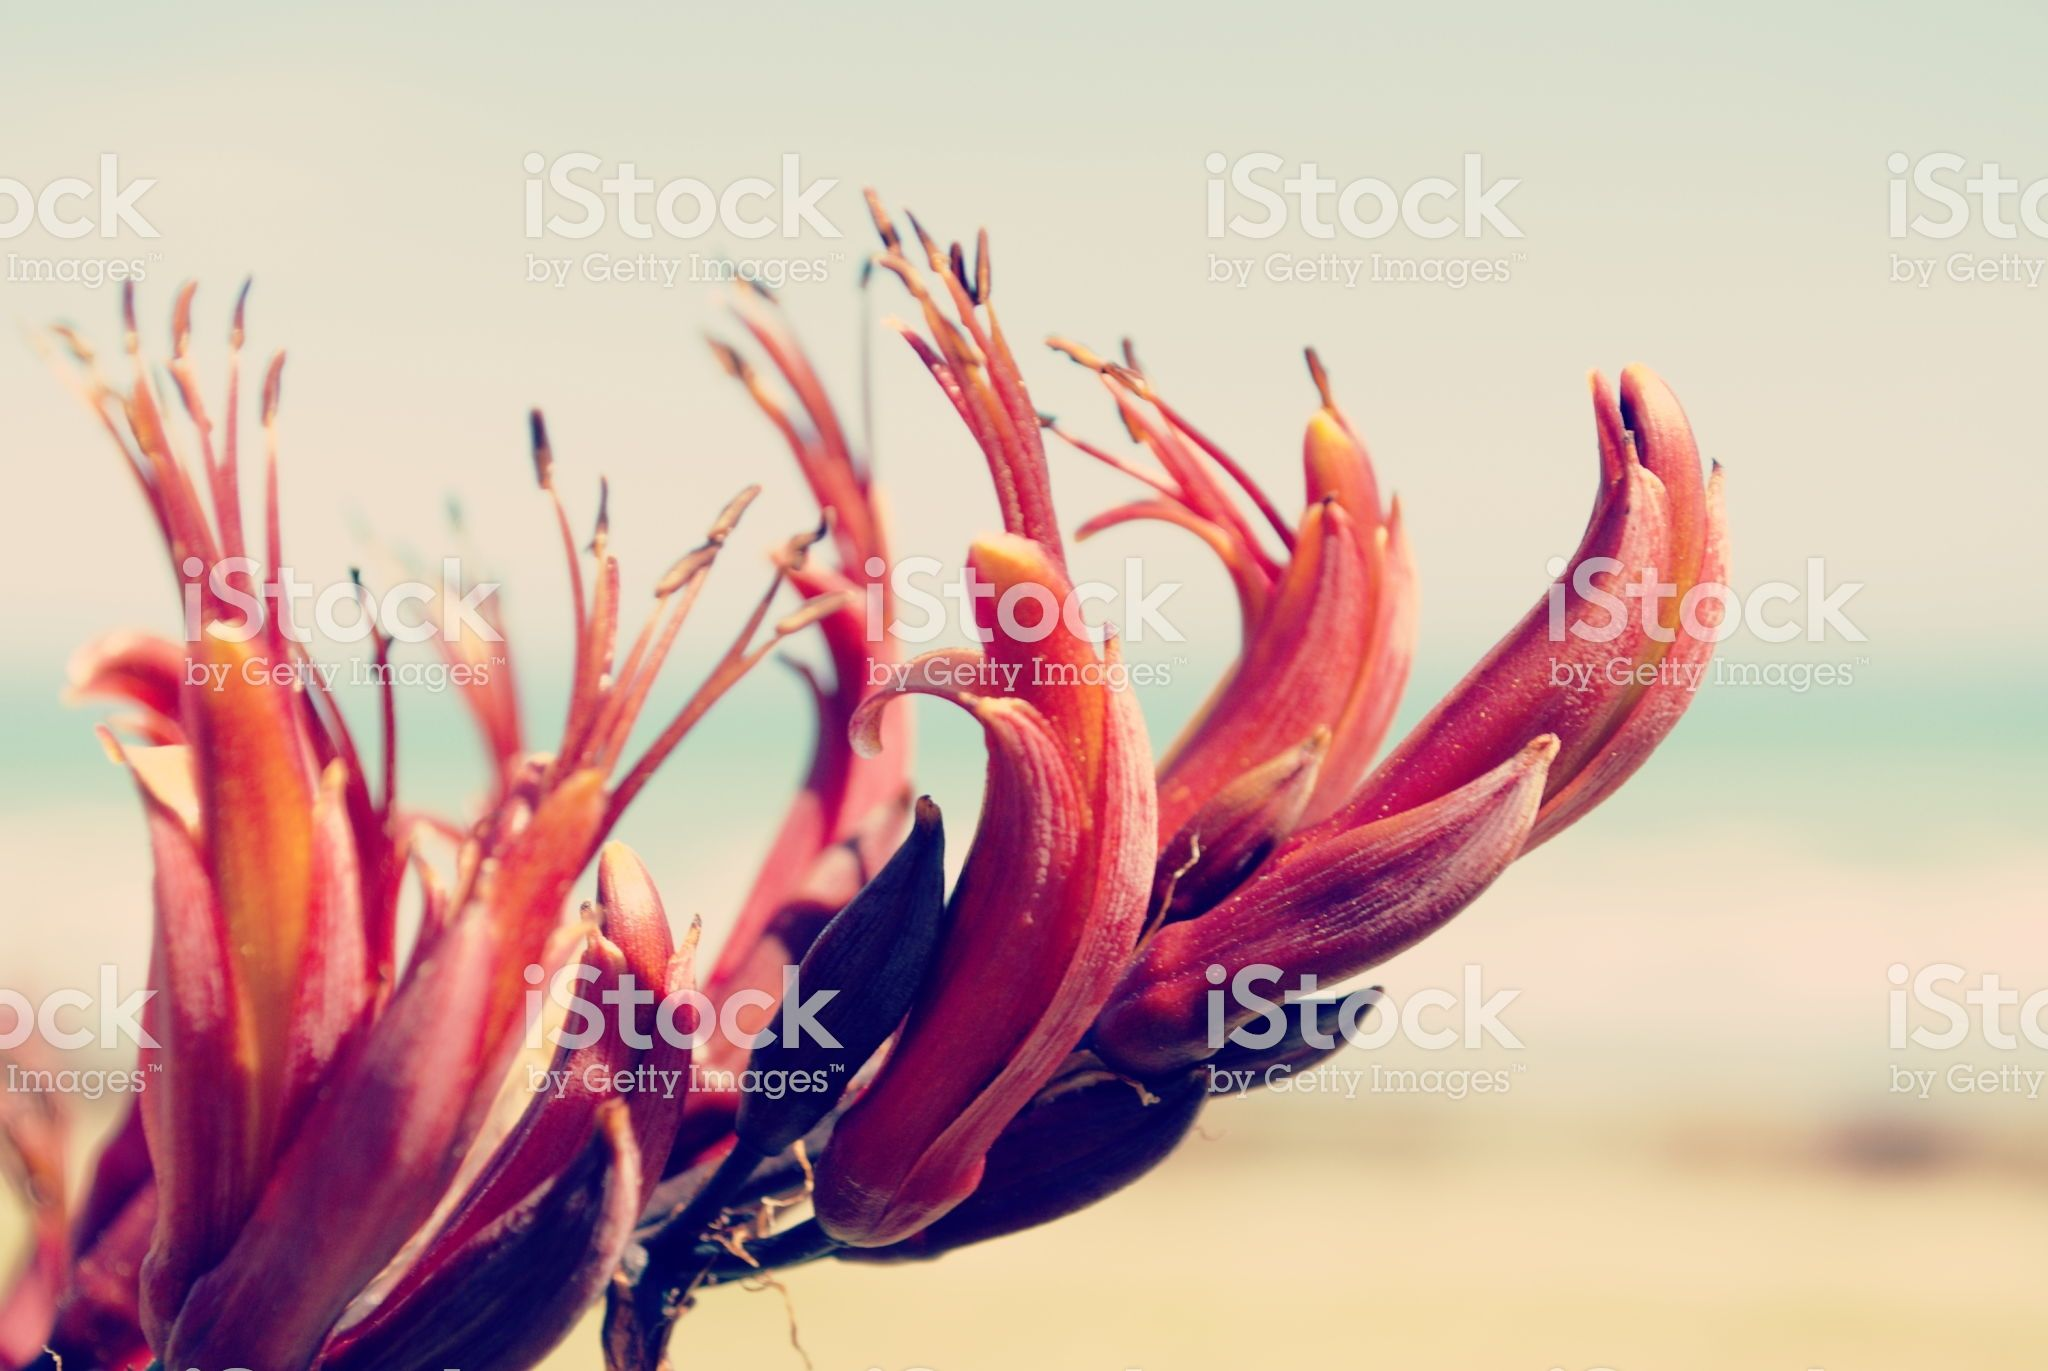 Pin On Royalty Free Stockphotos Available